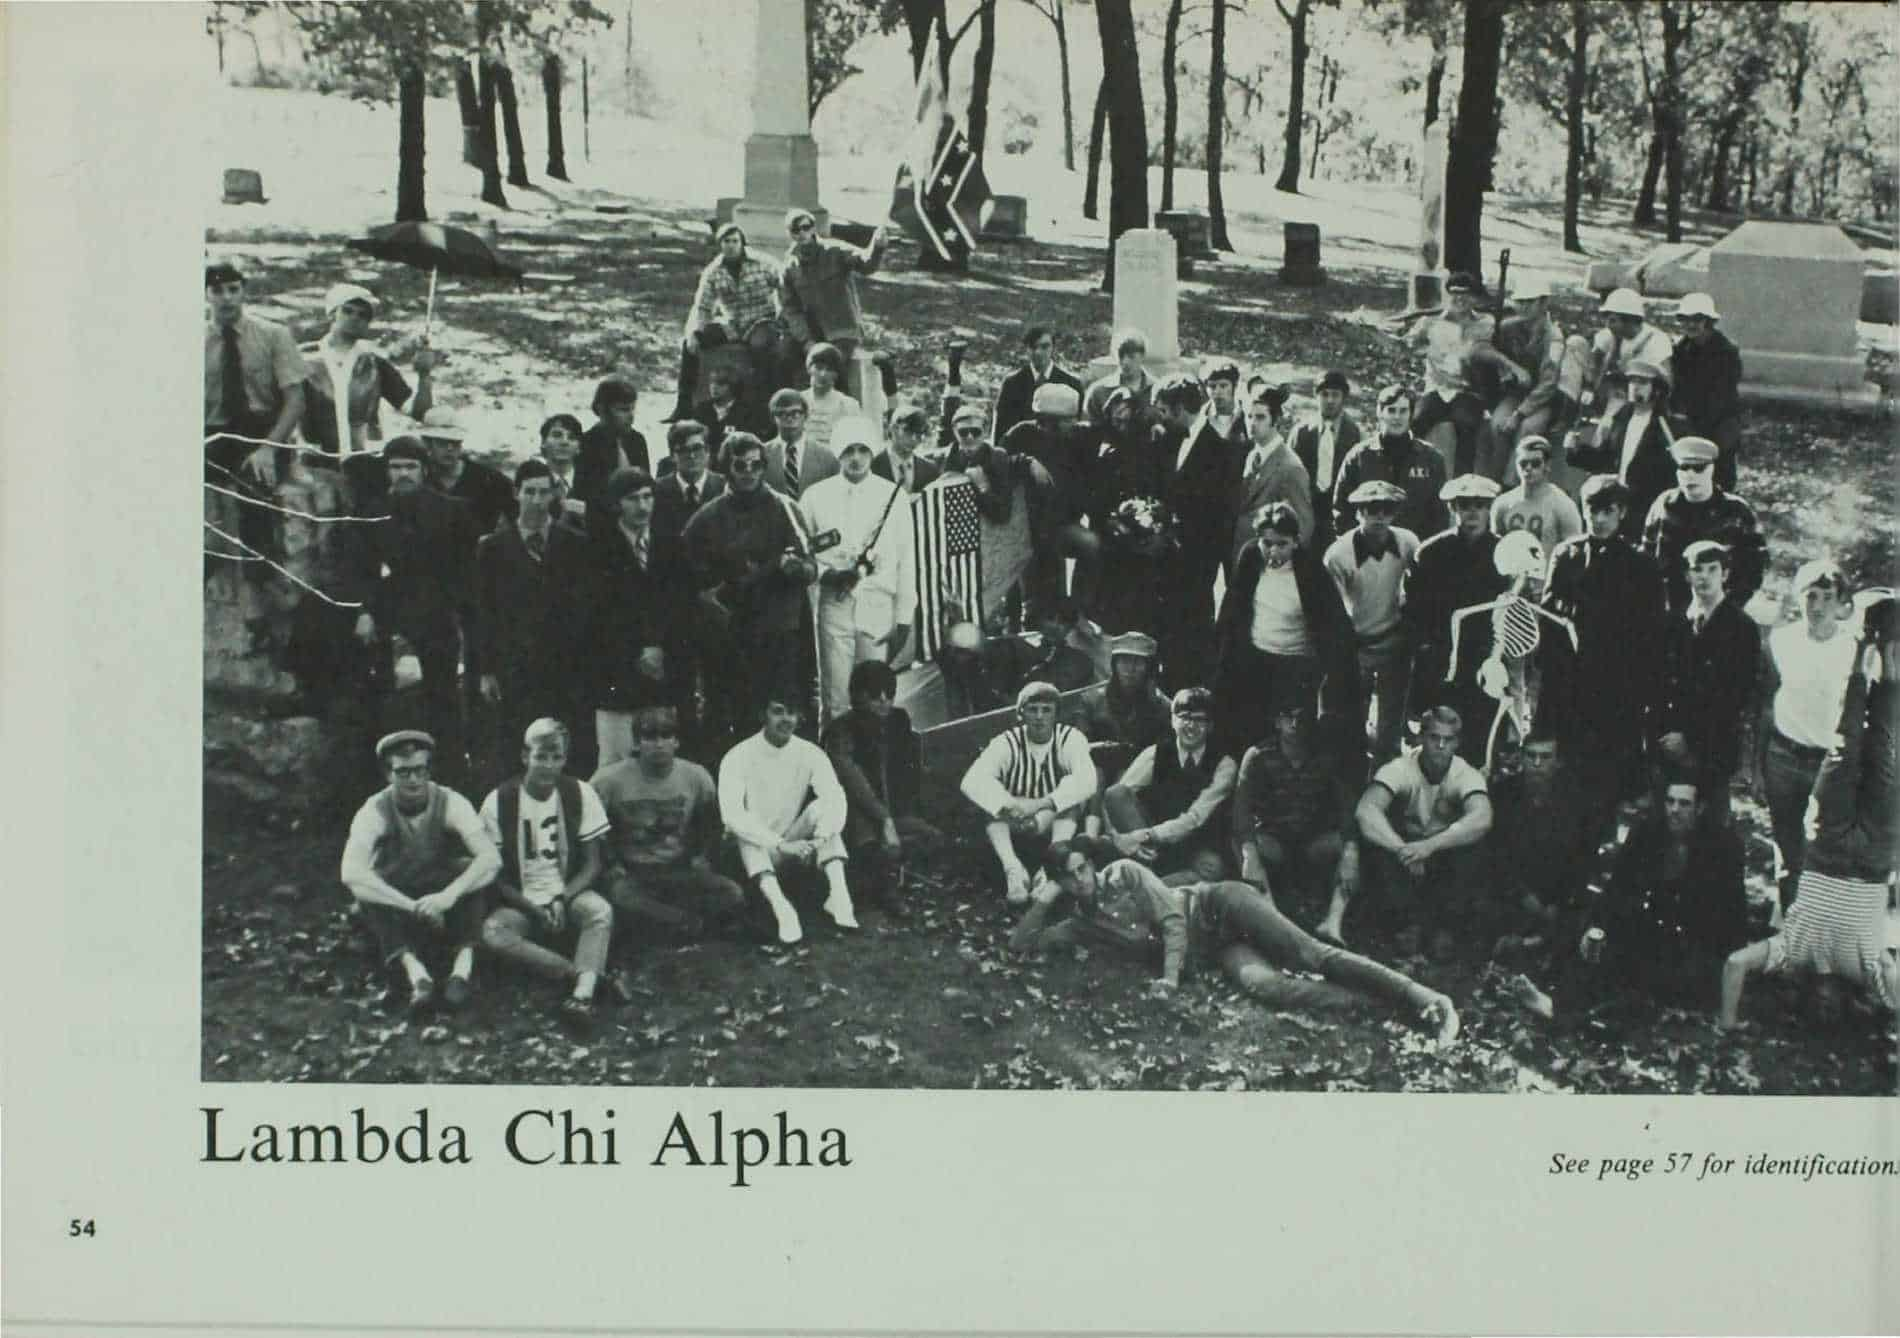 1971 Iowa State Yearbook p.1